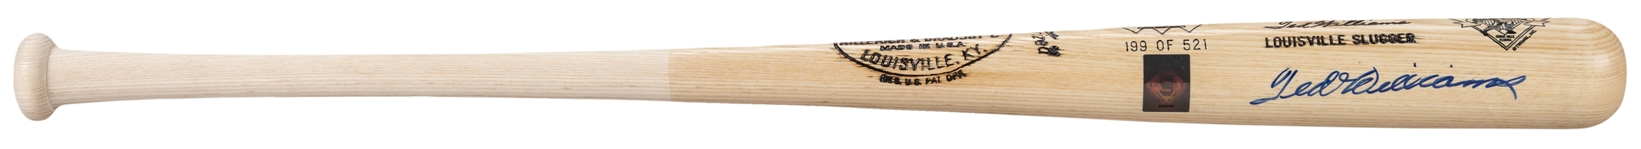 Ted Williams Single Signed Hillerich & Bradsby 521 Diamond Club Commemorative Bat - 199/521 (JSA)